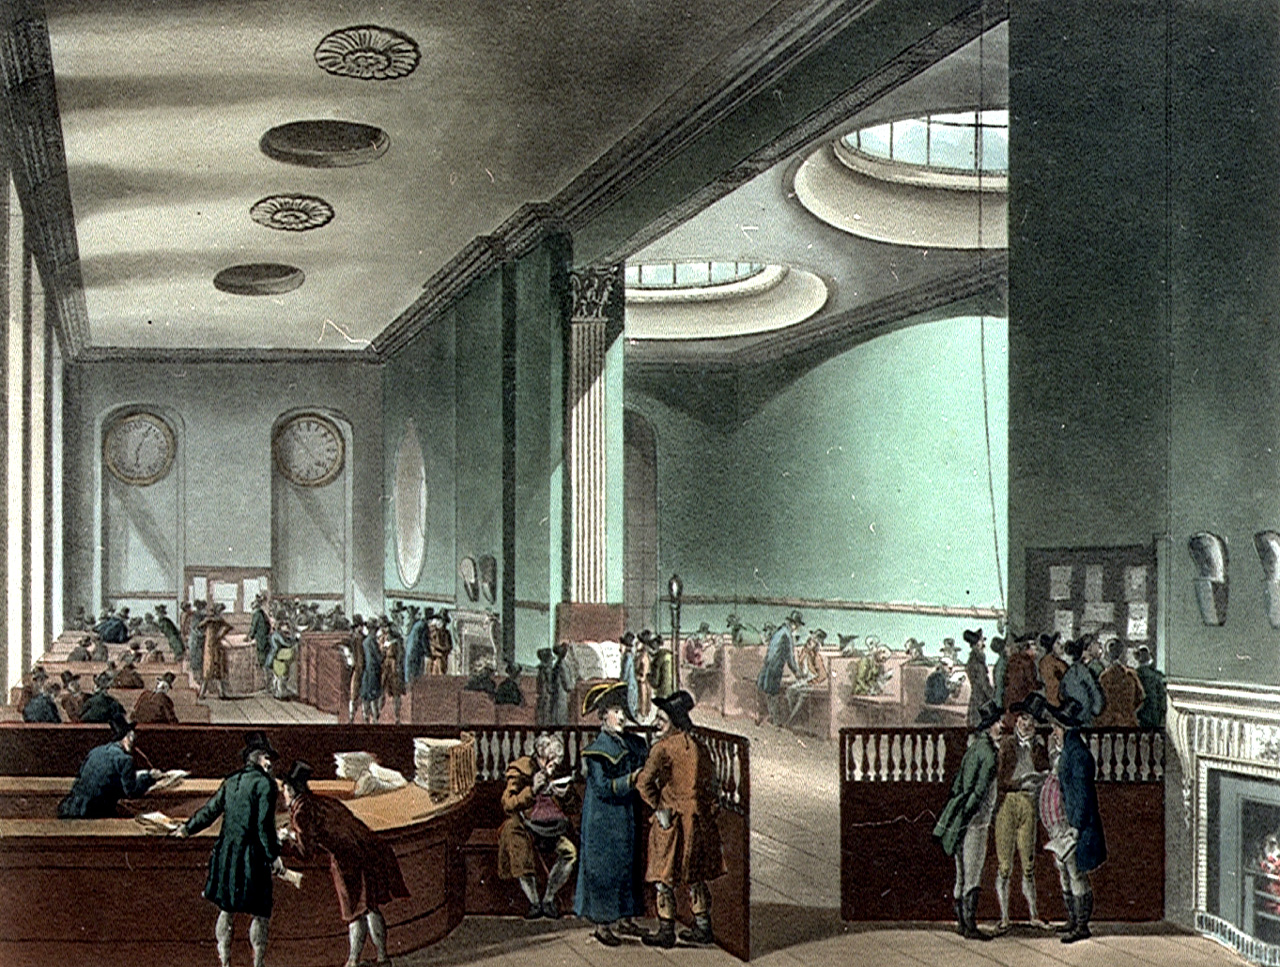 Lloyd's began in Edward Lloyd's coffee house in Tower Street in the City of London during the 17th century. Lloyd himself was not involved in insurance but provided premises, reliable shipping news and a variety of services to enable his clientele of ships' captains, merchants and rich men to carry on their business of insuring ships and their cargoes. These wealthy individuals would each take a share of a risk, signing their names one beneath the other on the policy together, with the amount they agreed to cover. For this reason they were known as 'underwriters'. By the end of the 18th century the underwriters had elected a committee and moved to their own premises in the Royal Exchange.